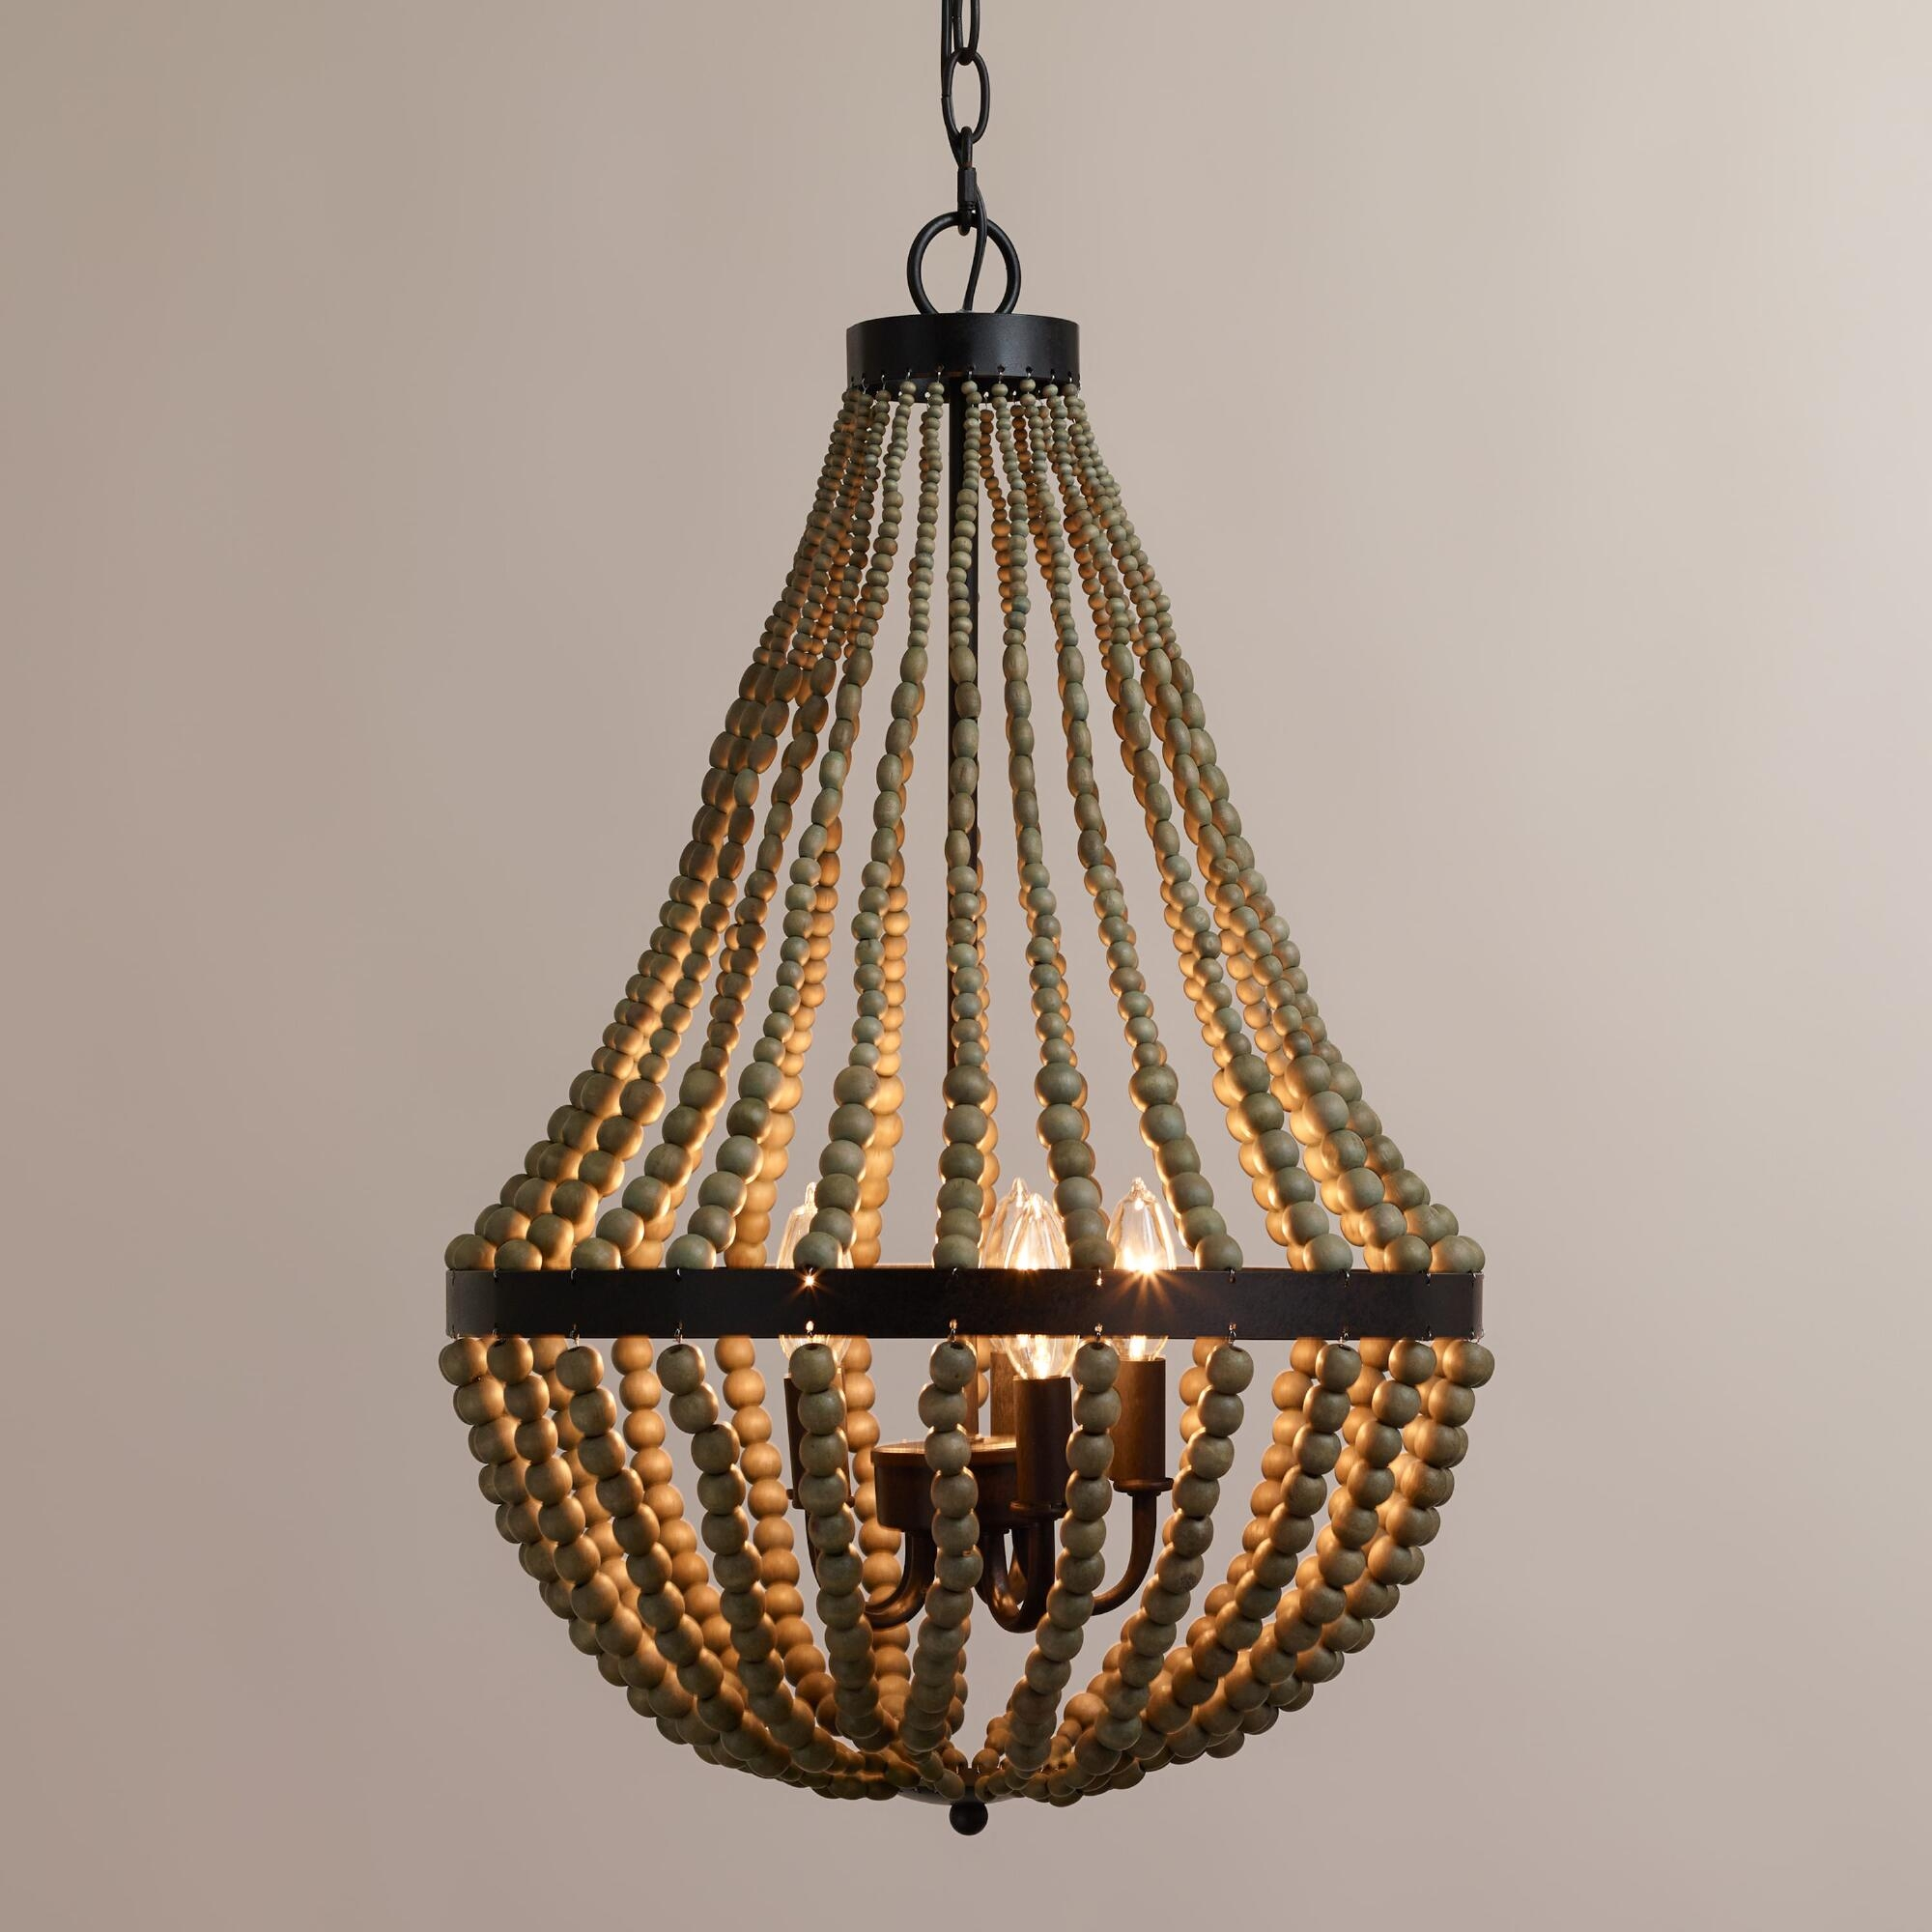 Interior Amazing Ceiling Light Wood Bead Chandelier For Home With Turquoise Wood Bead Chandeliers (Image 21 of 25)